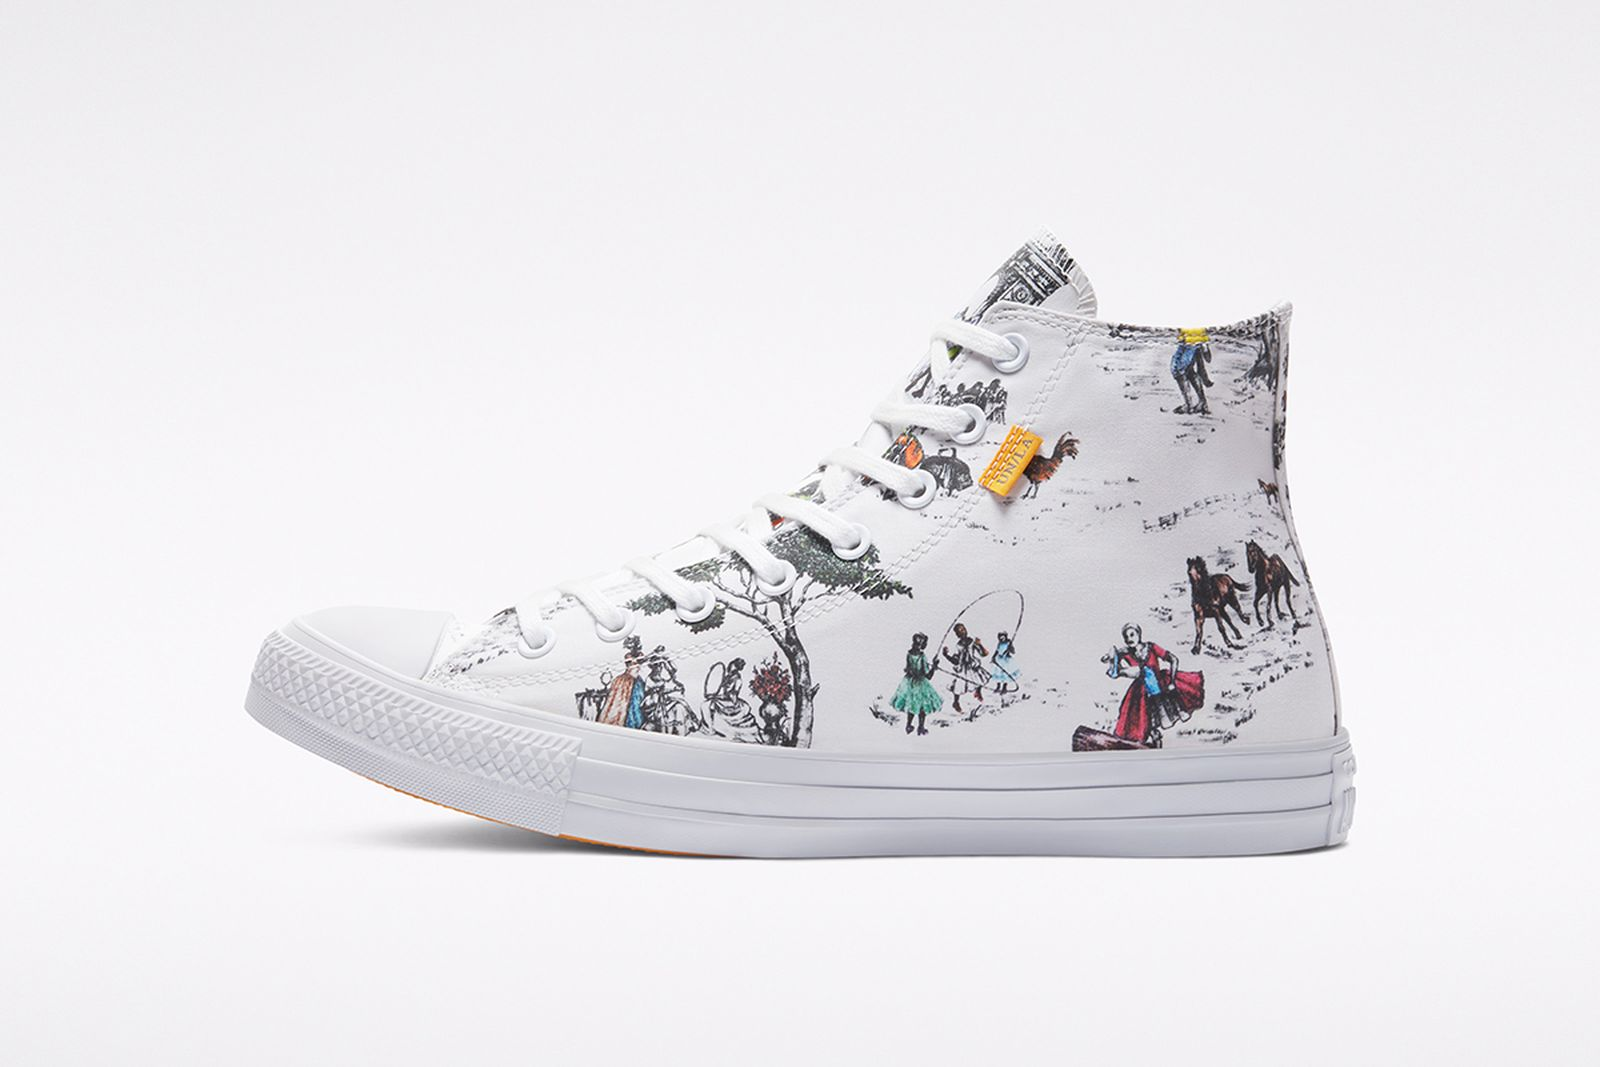 union-converse-chuck-taylor-all-star-release-date-price-1-02